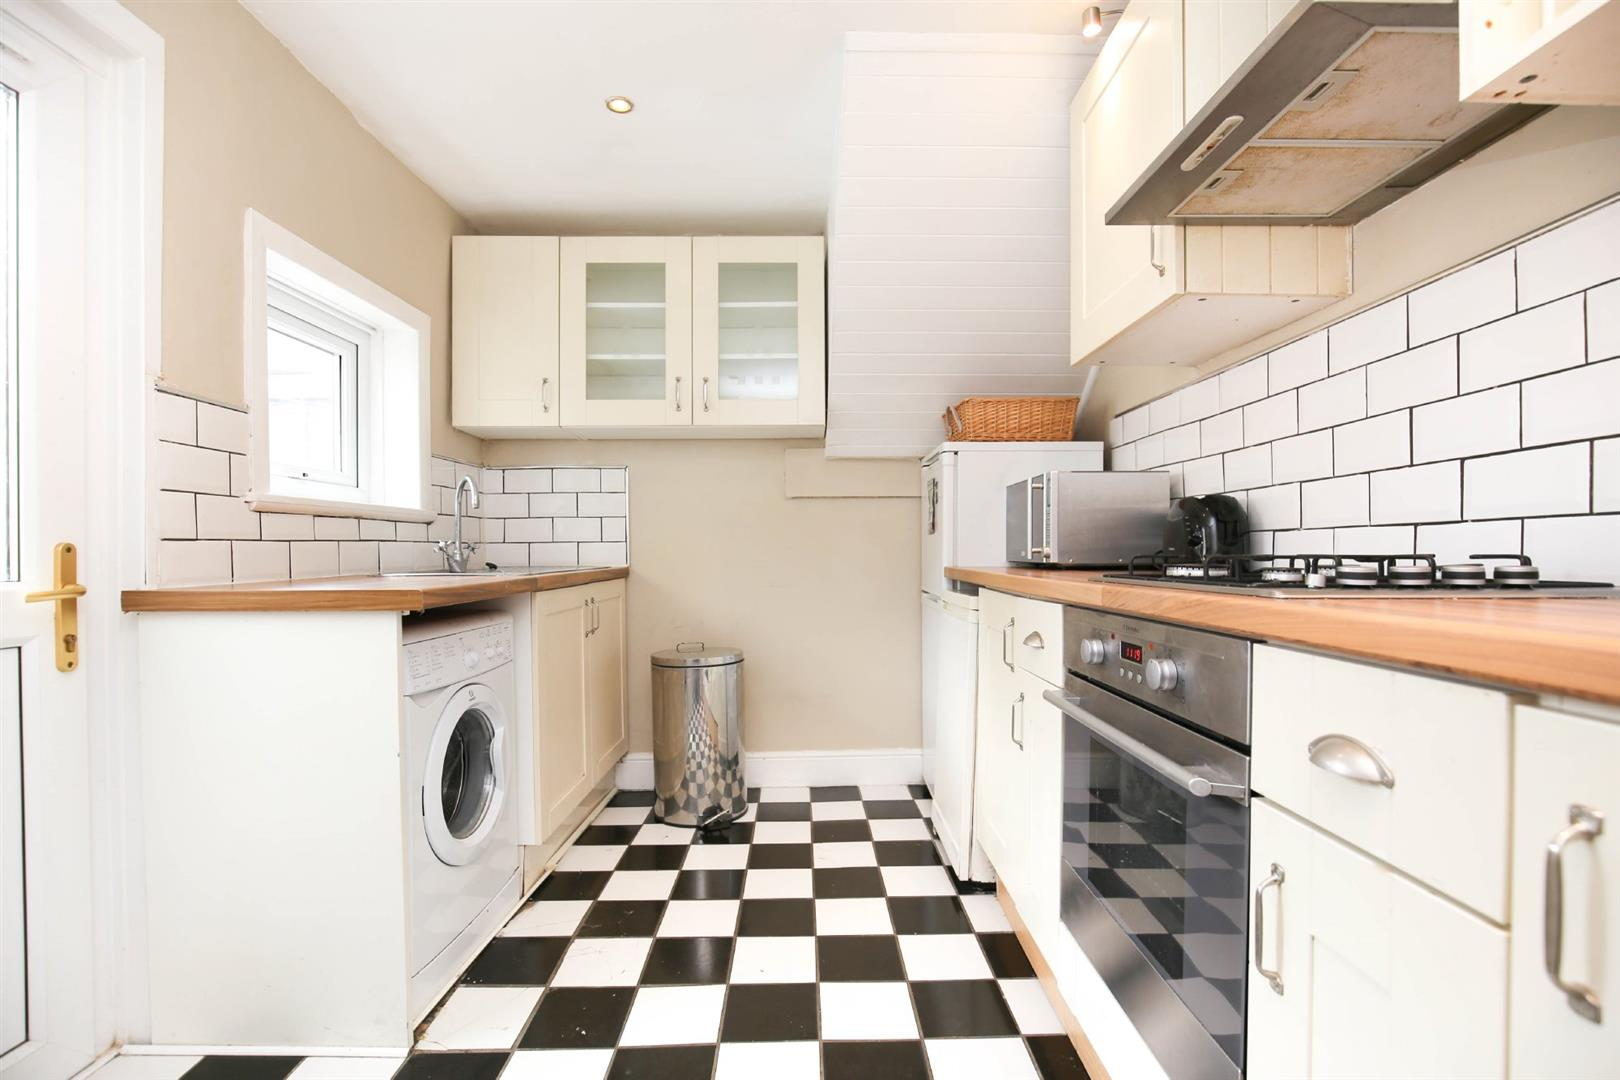 3 bed flat to rent in Third Avenue, Newcastle Upon Tyne, NE6